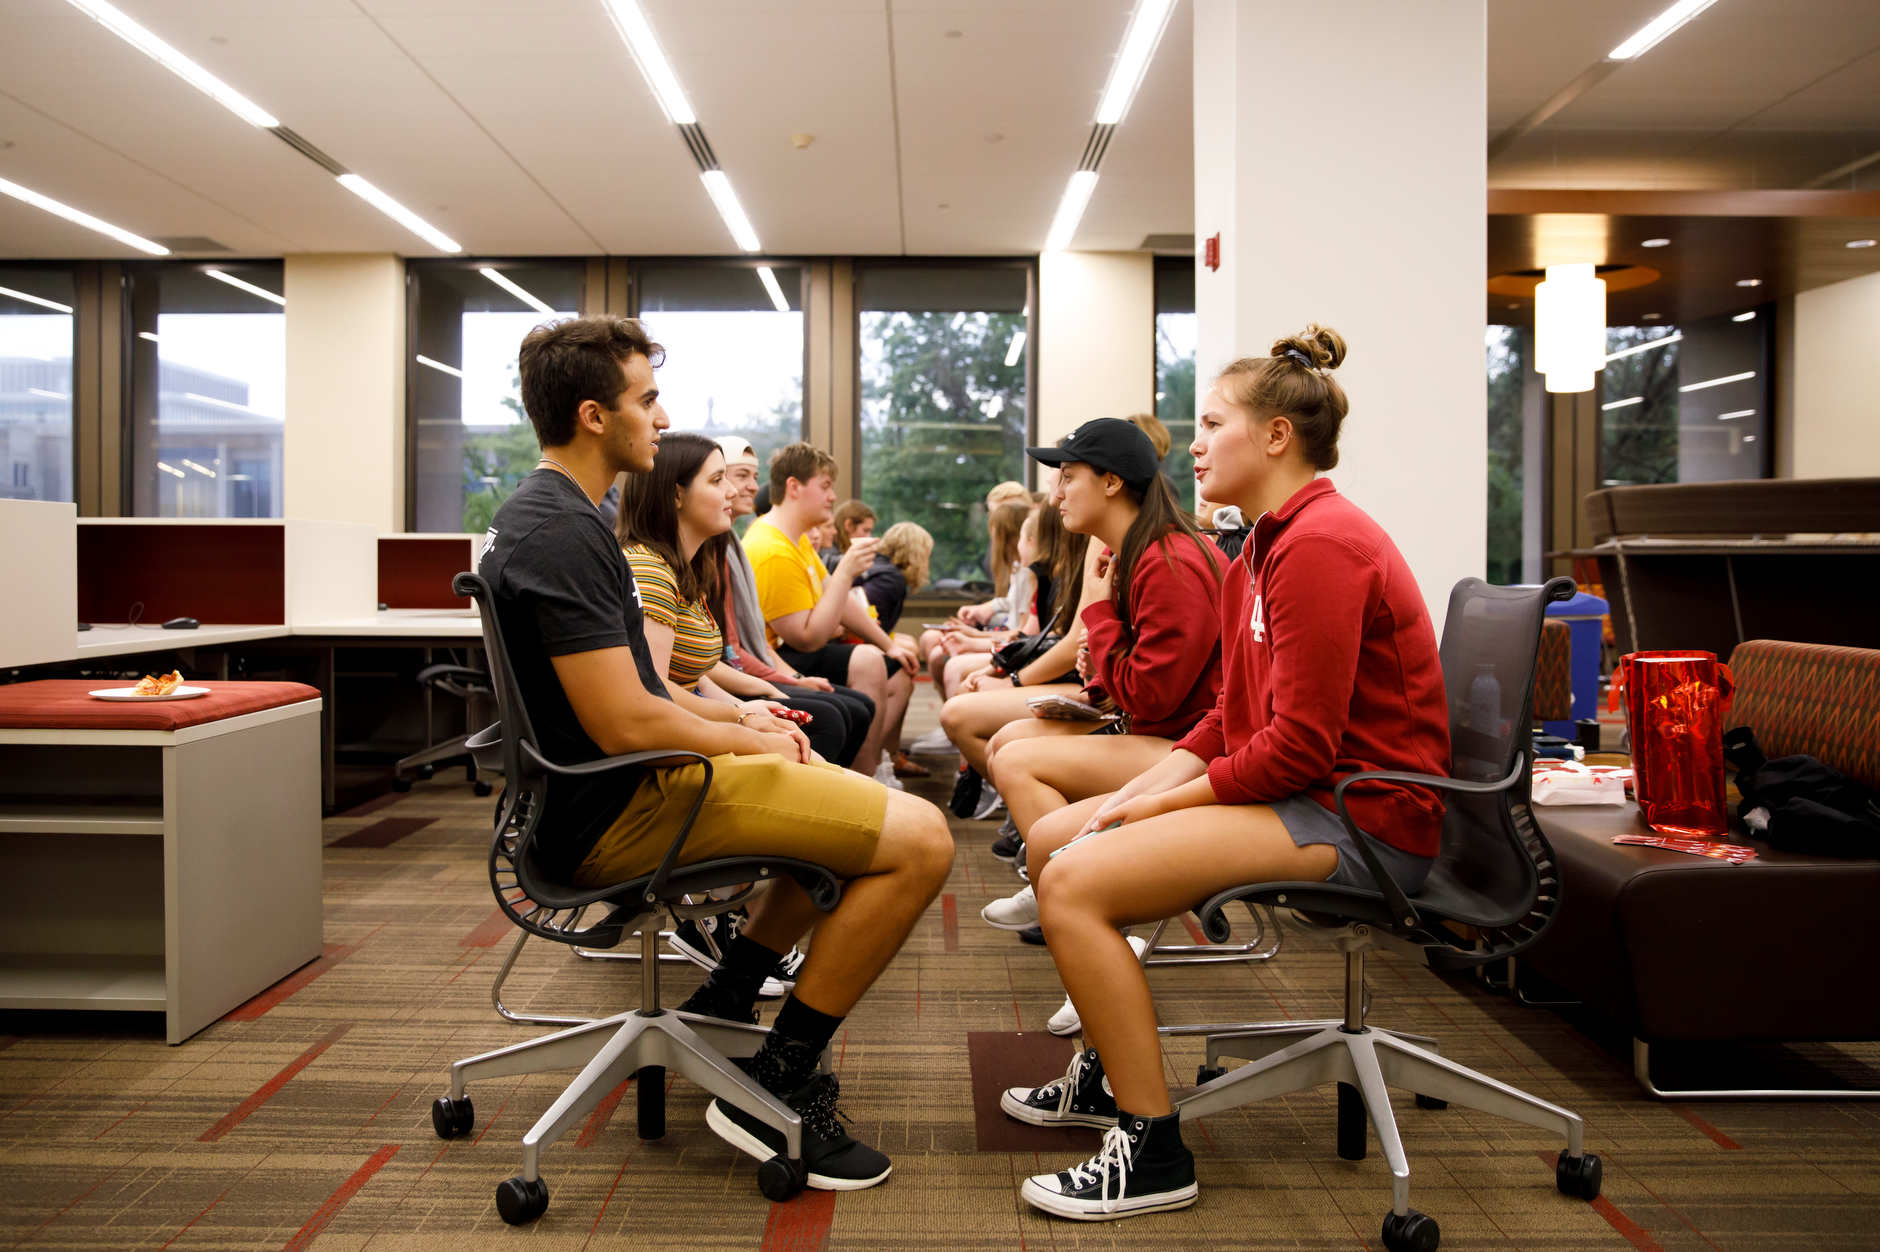 """Students participate in """"speed friending"""" during the Herman B House Party in the Wells Library at IU Bloomington on Thursday, Aug. 22, 2019. (James Brosher/Indiana University)"""